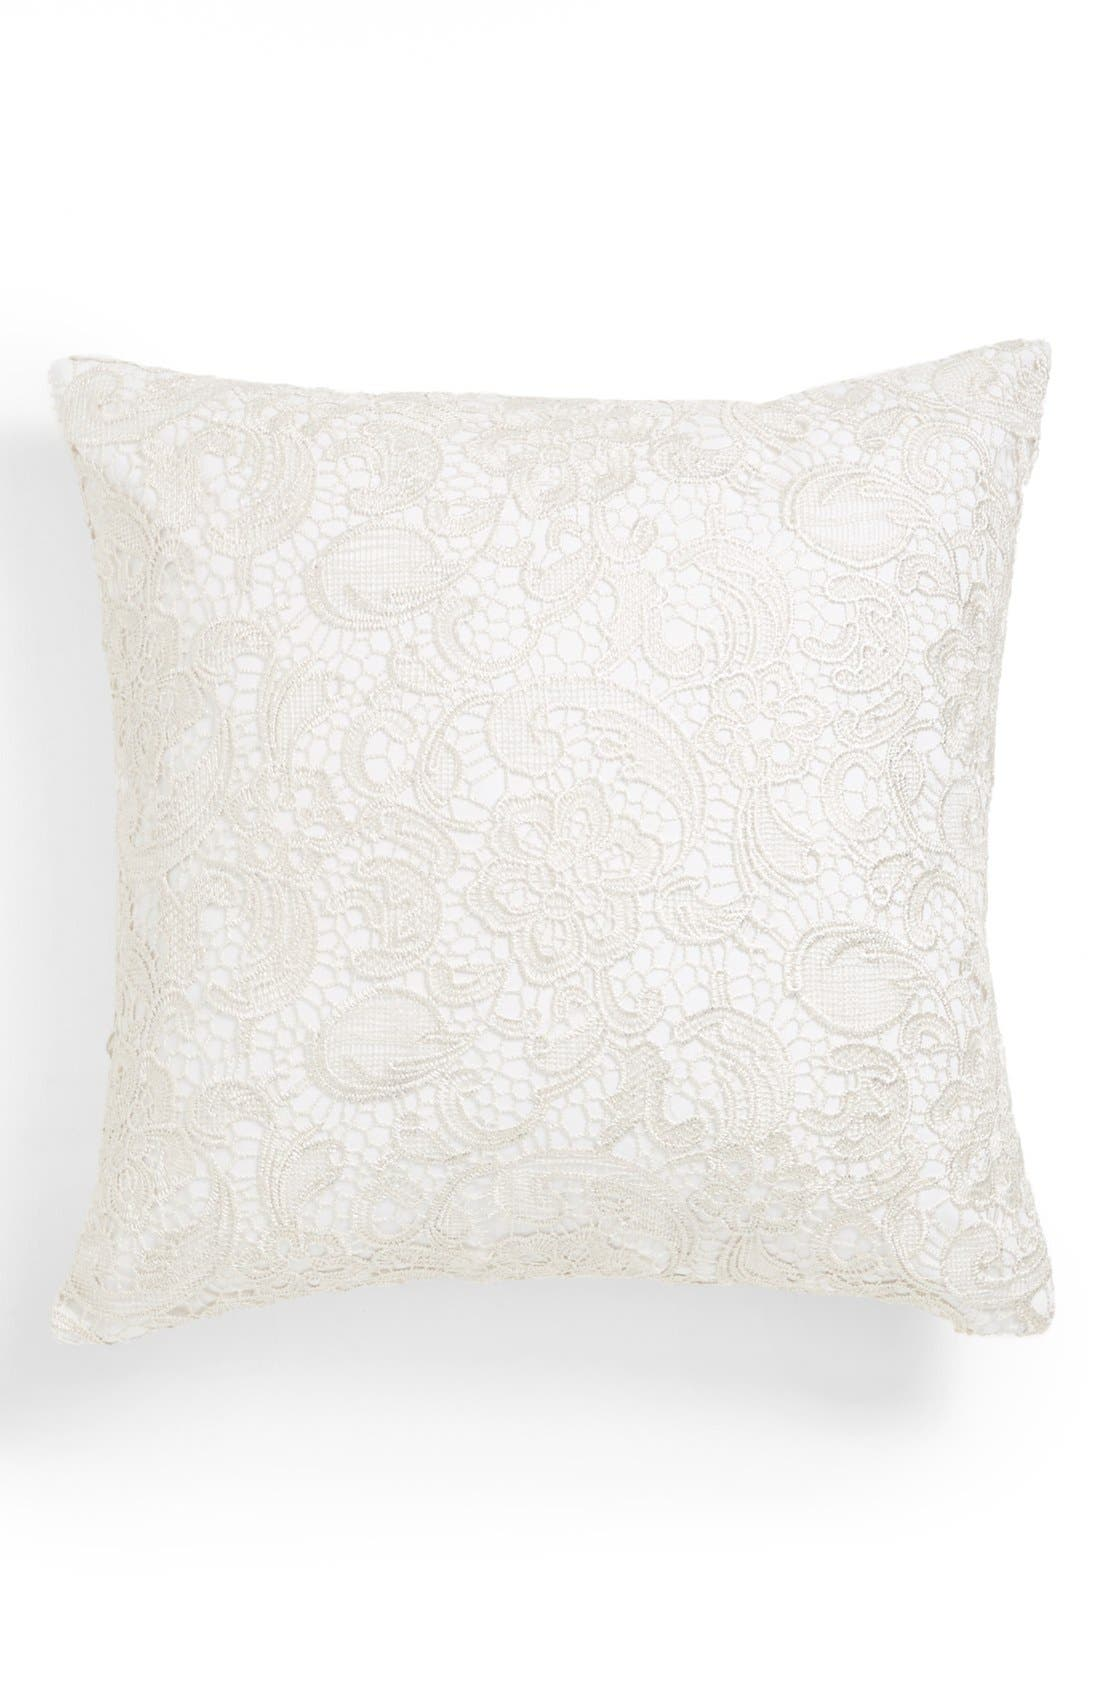 Main Image - Nordstrom at Home 'Glistening Lace' Pillow